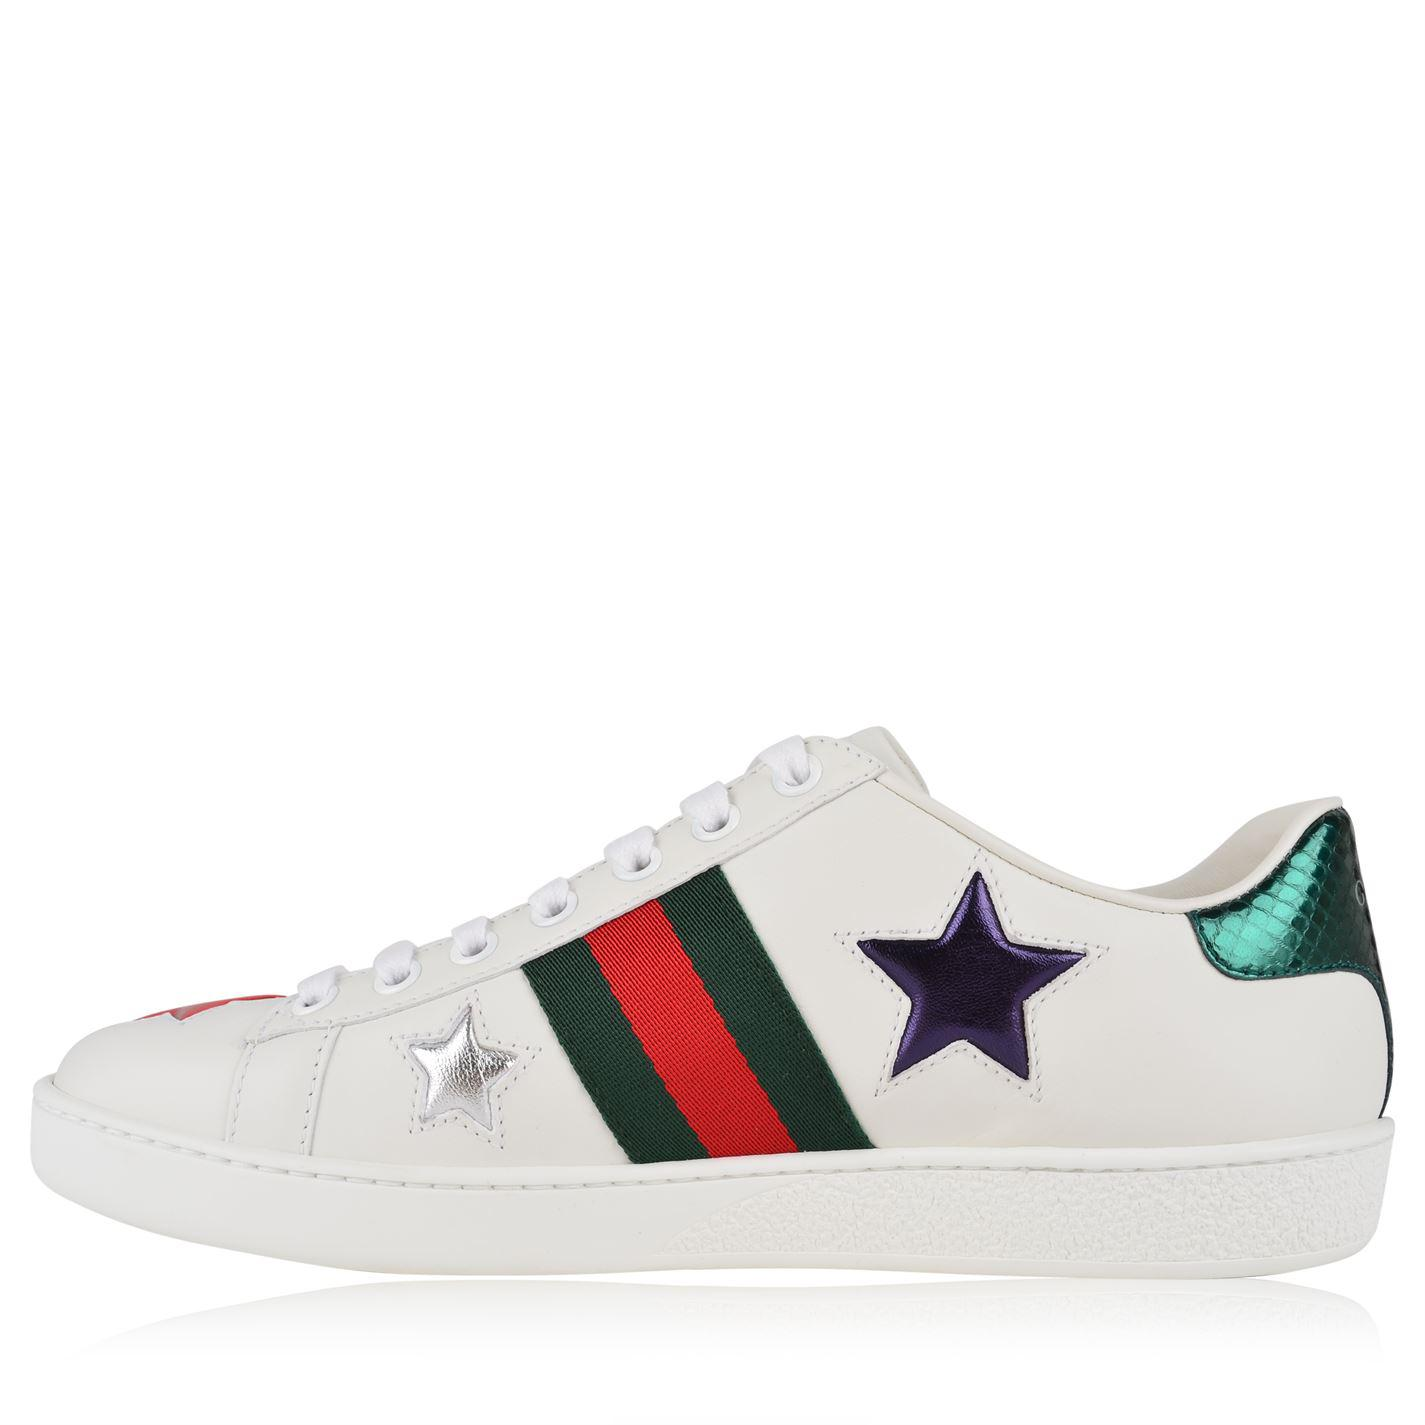 a6654411a30 Lyst - Gucci New Ace Star Patch Trainers in White - Save 8%